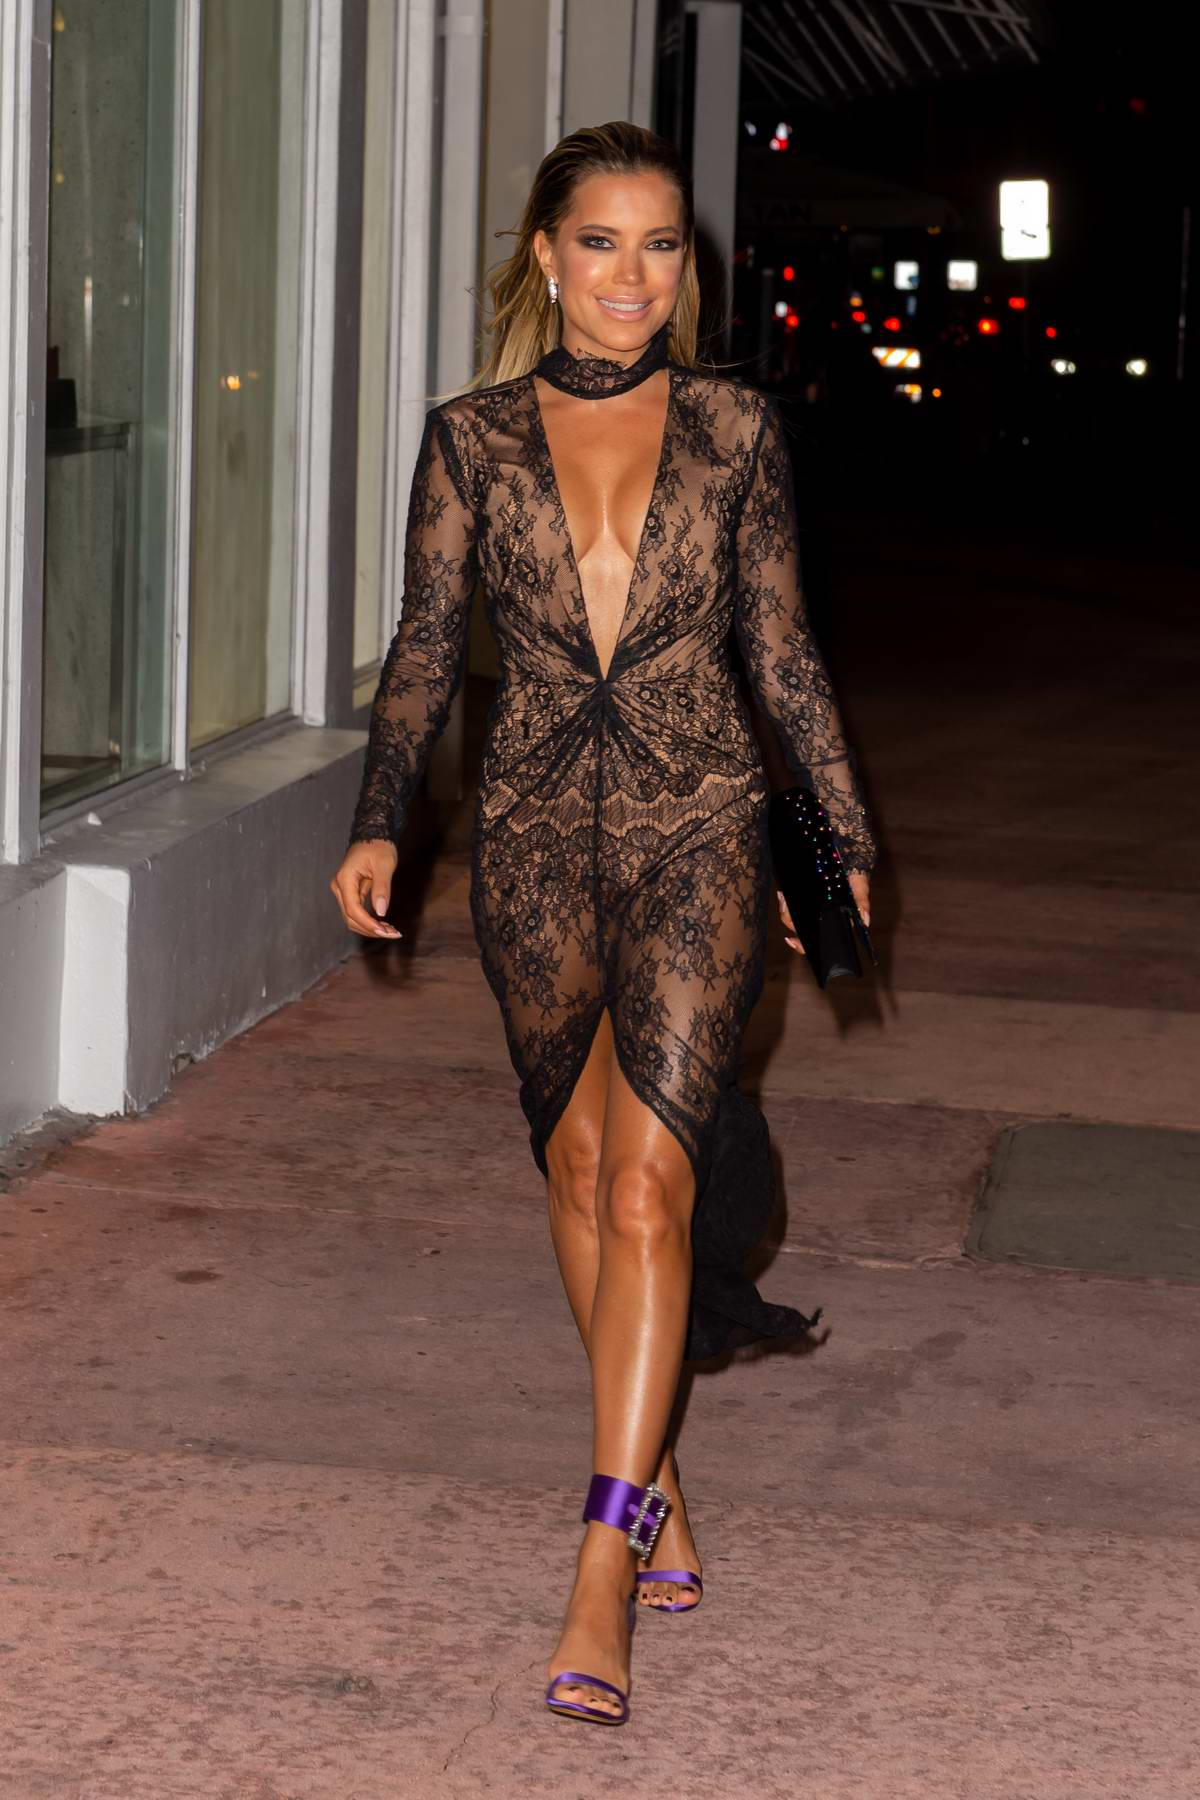 Sylvie Meis wearing a sheer low cut dress as she heads out to dinner in Miami Beach, Florida